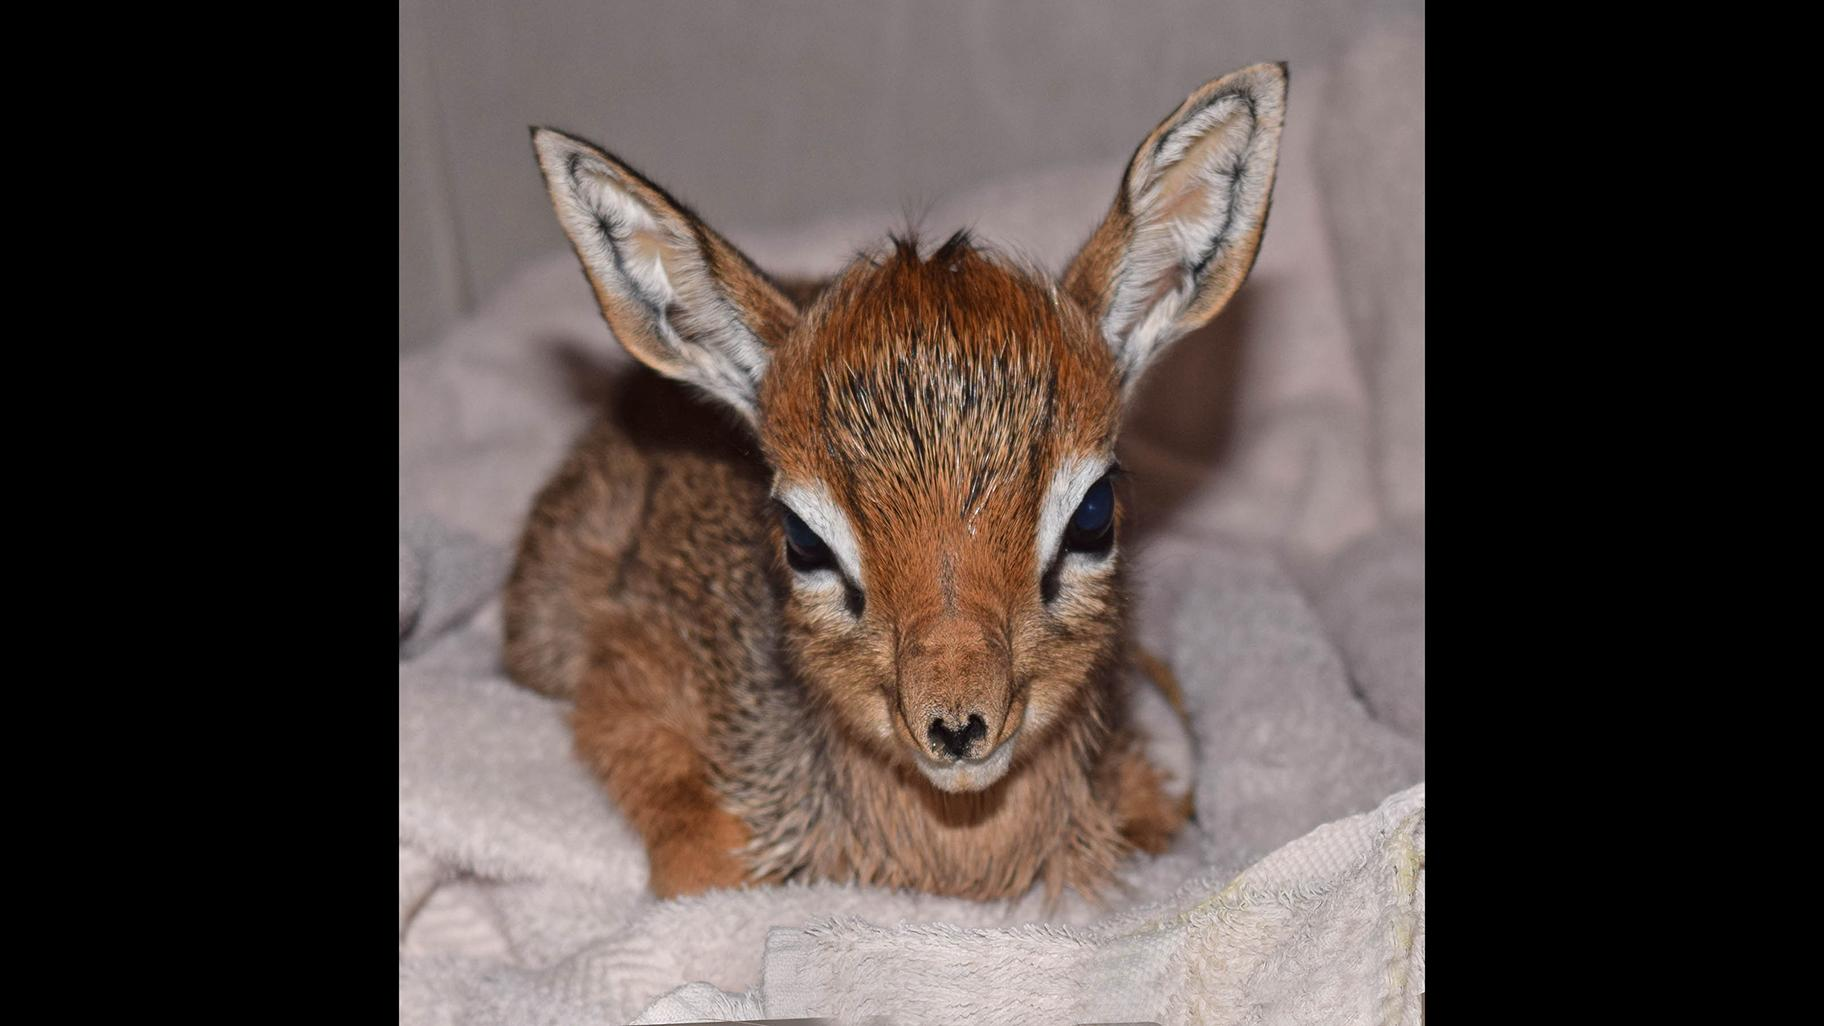 A newborn tiny African antelope named Valentino weighed in at 23 ounces (Cathy Bazzoni / Chicago Zoological Society)